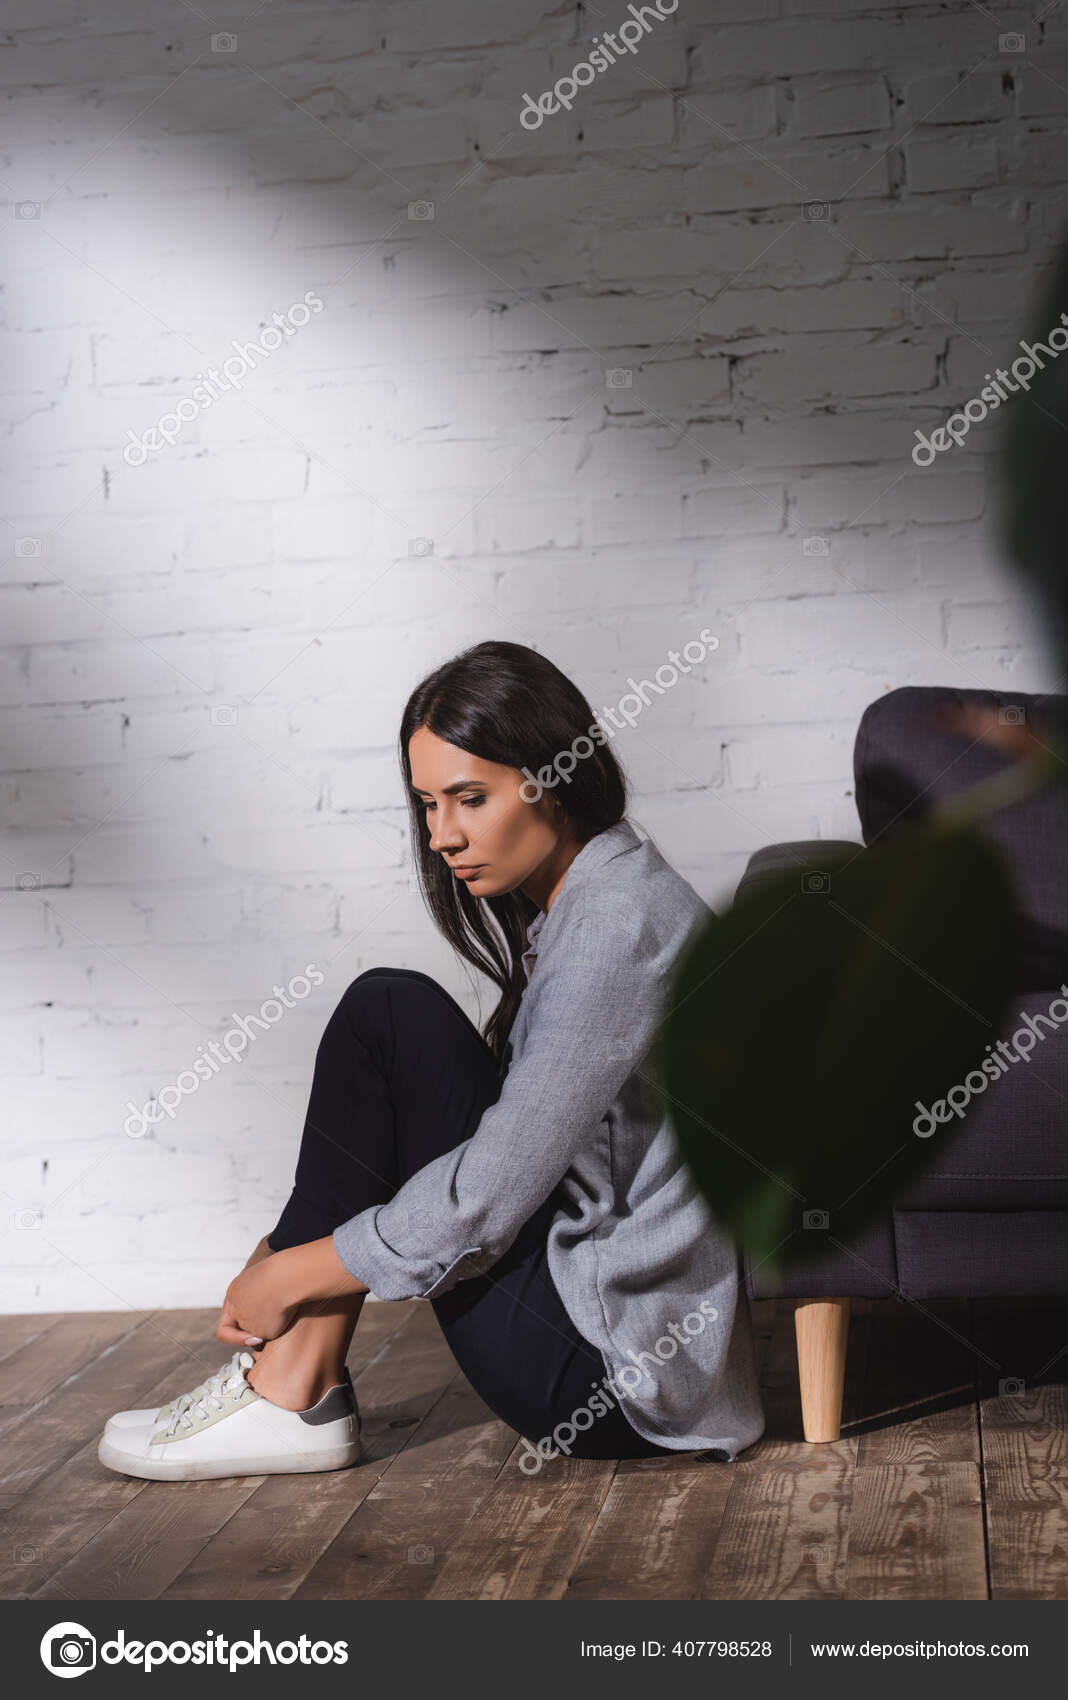 Sad Lonely Woman Sitting Floor Brick Wall Home Mental Health Stock Photo Image By Andrewlozovyi 407798528